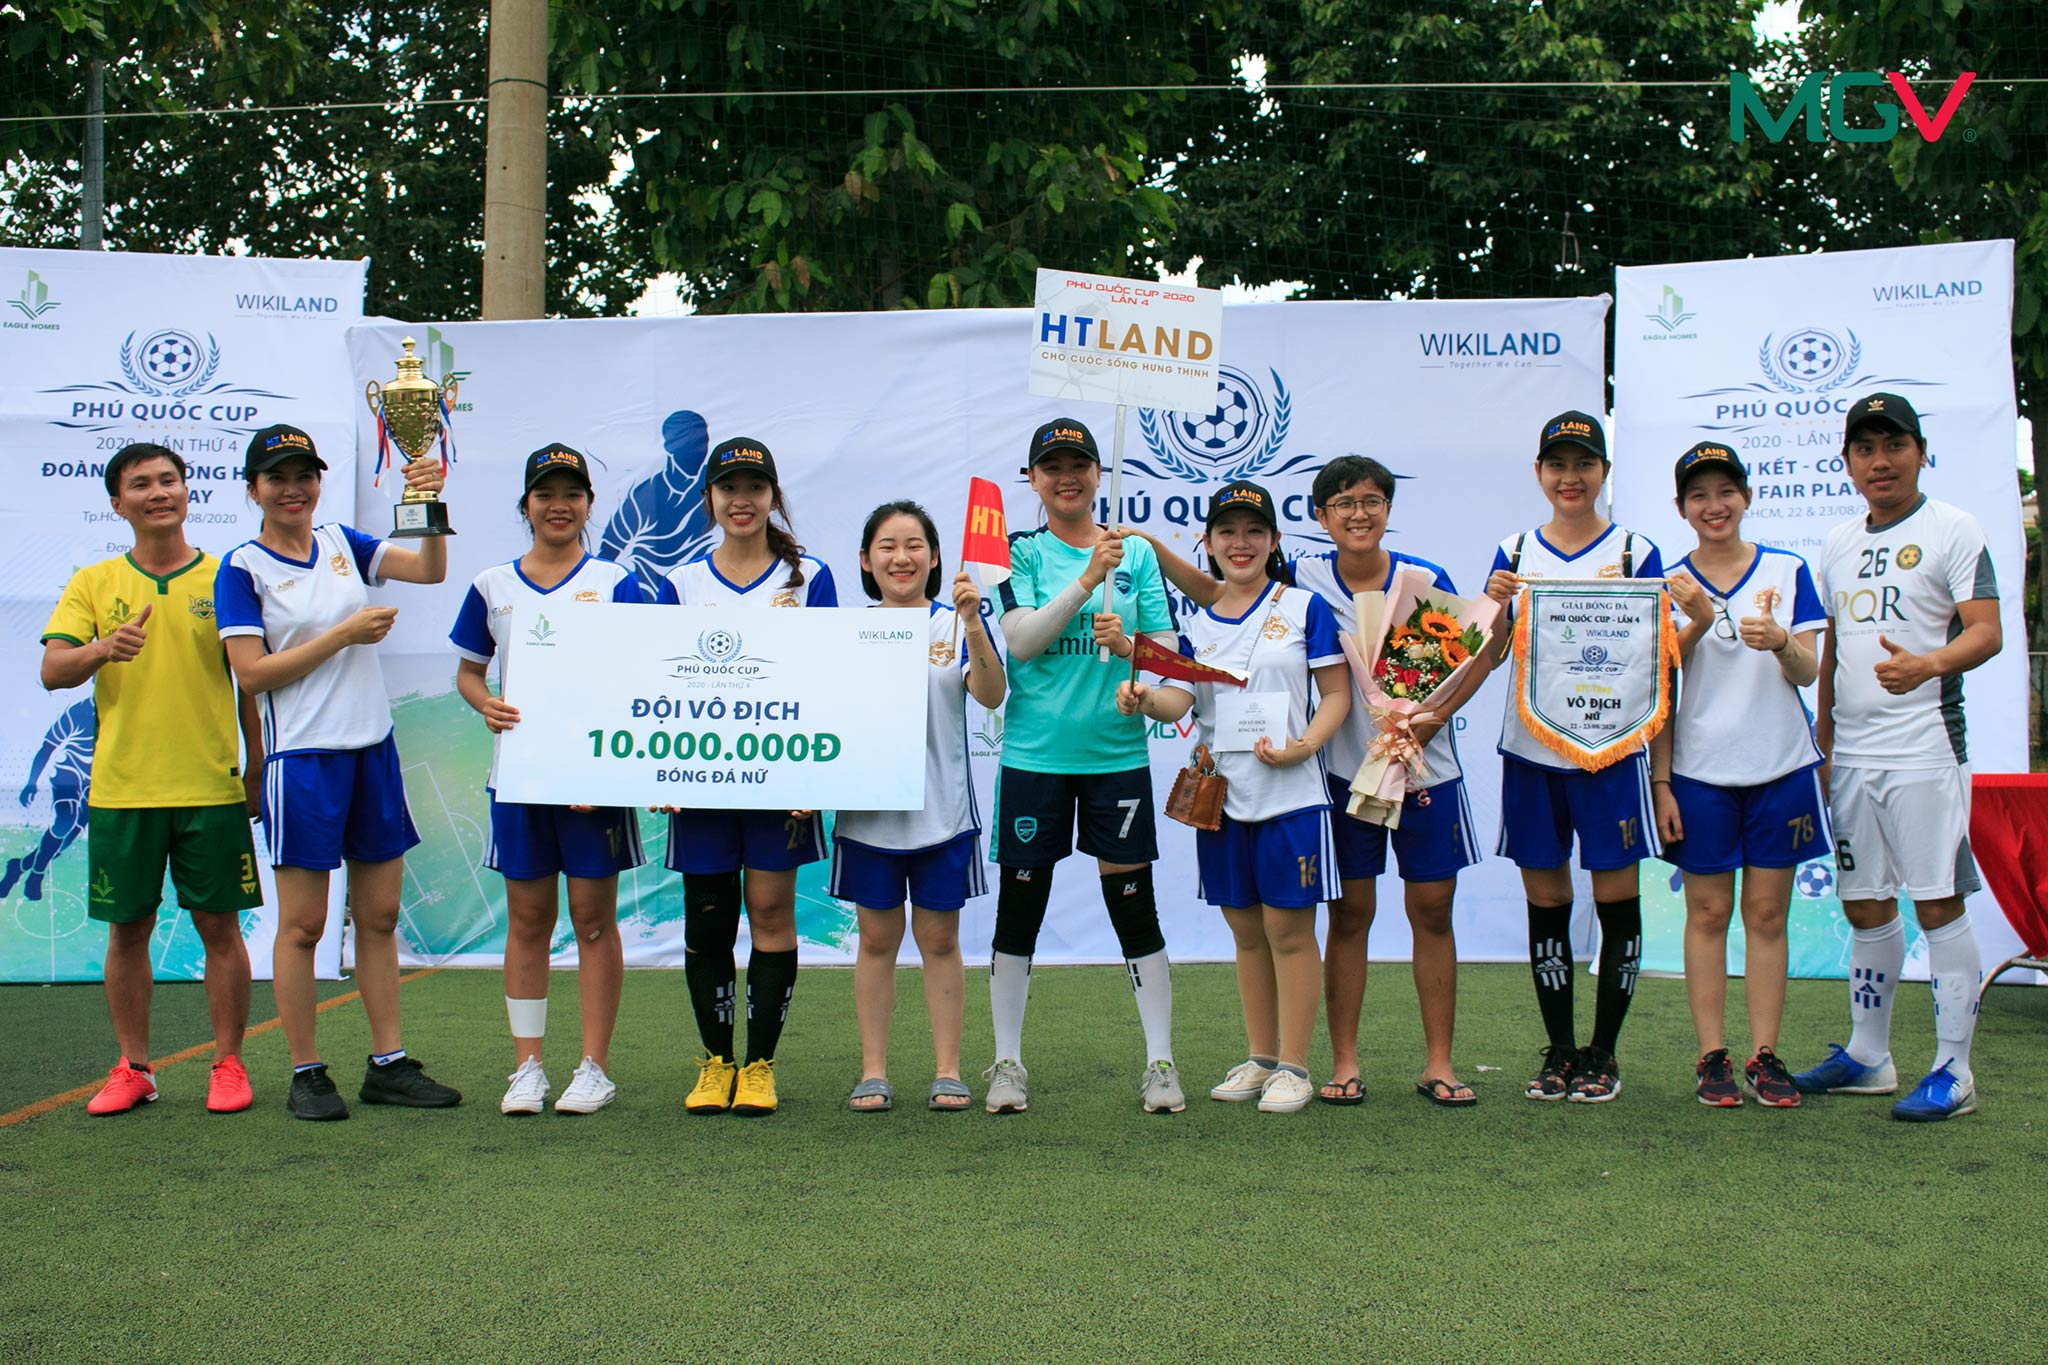 Phu Quoc Cup 4